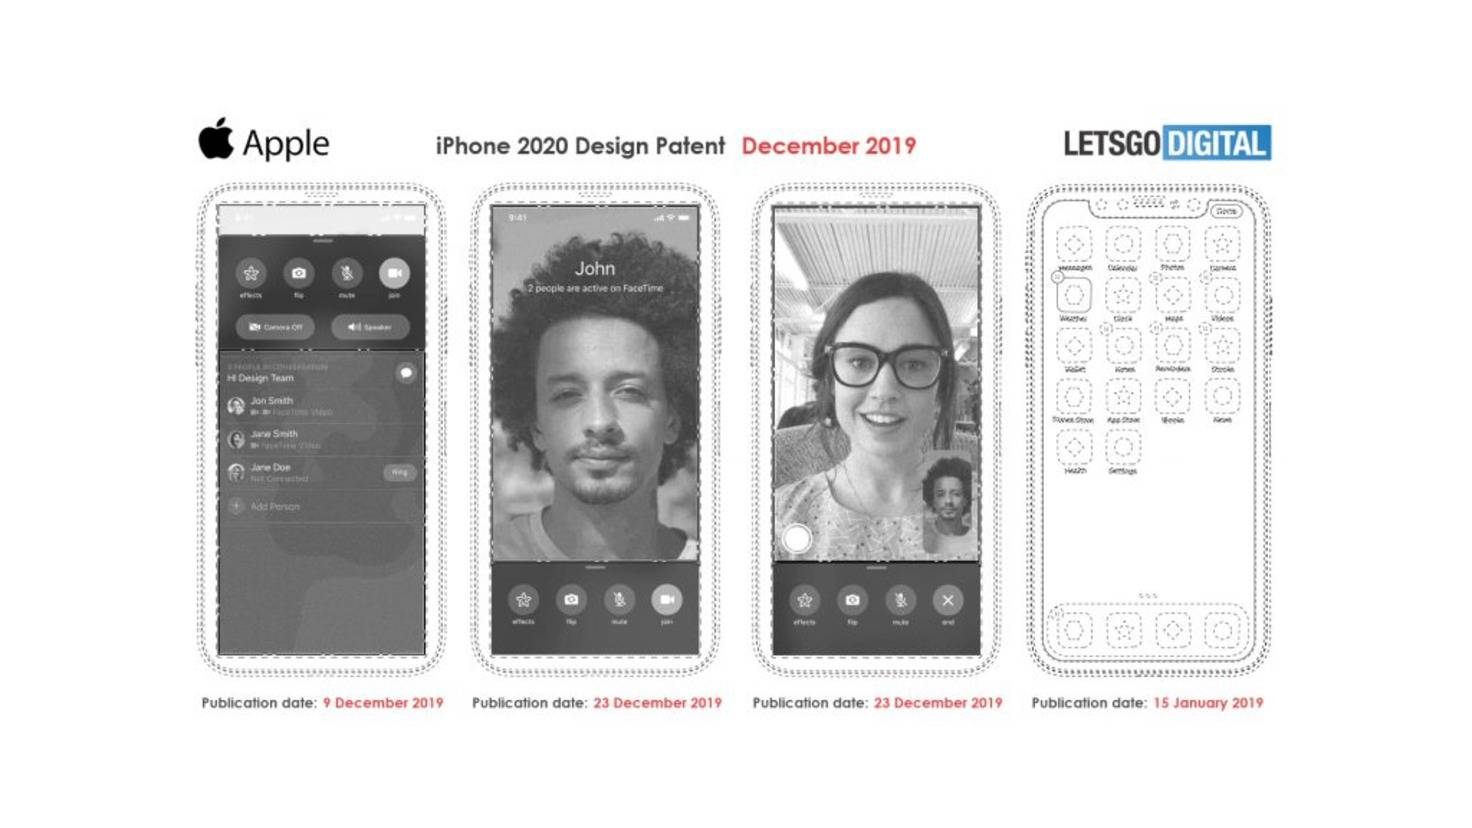 iphone-2020-design-patente